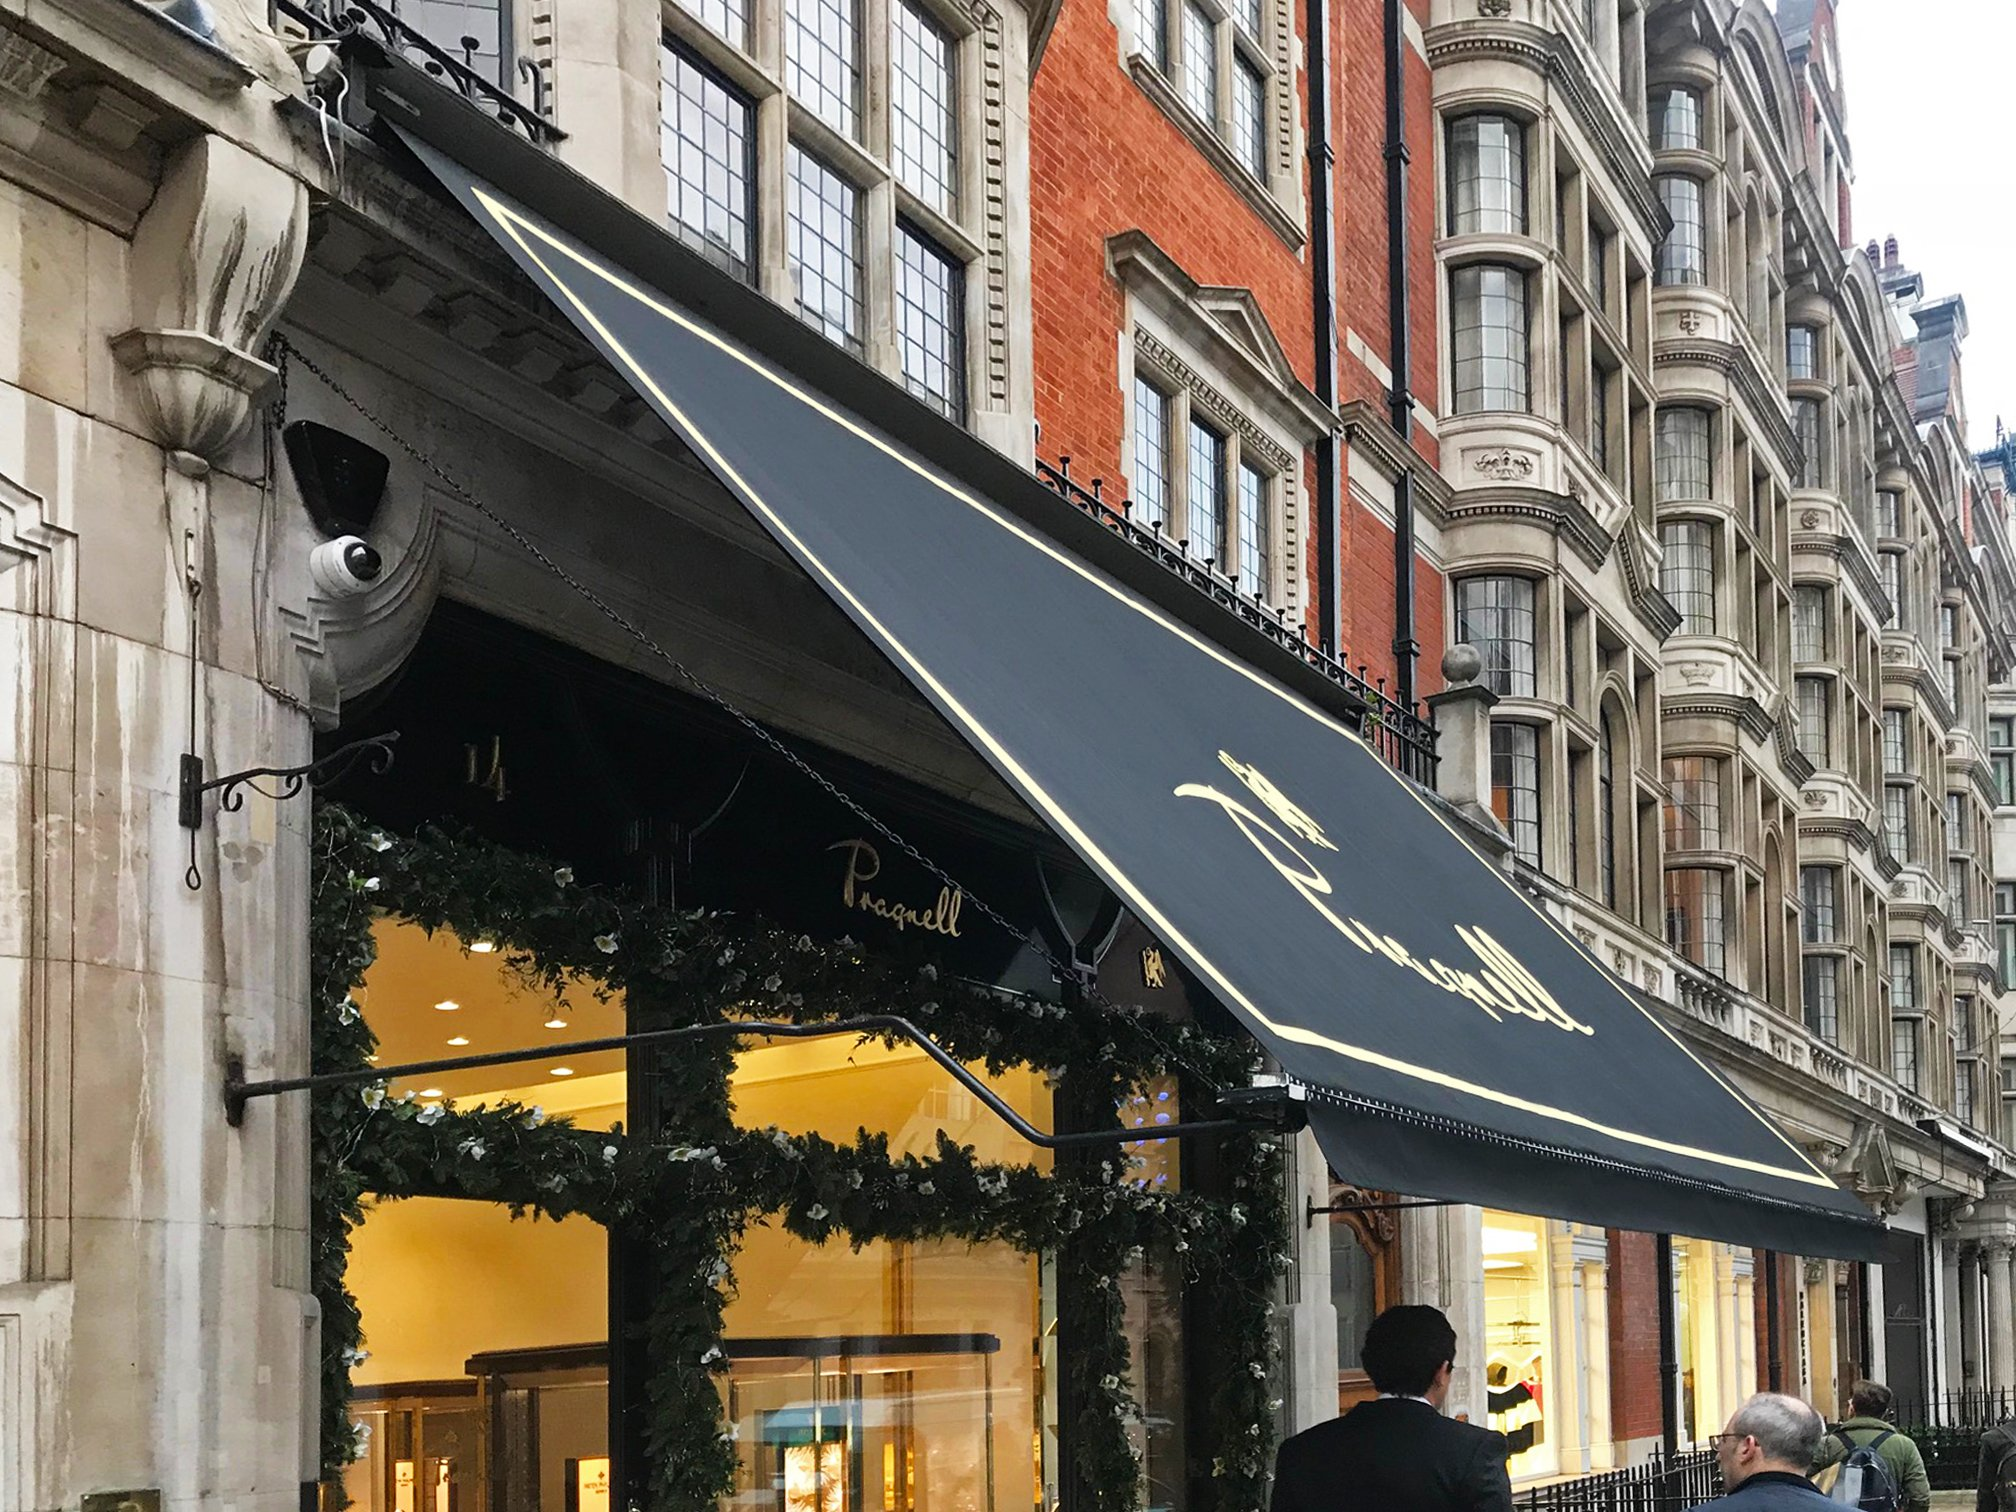 Pagnells Victorian awning